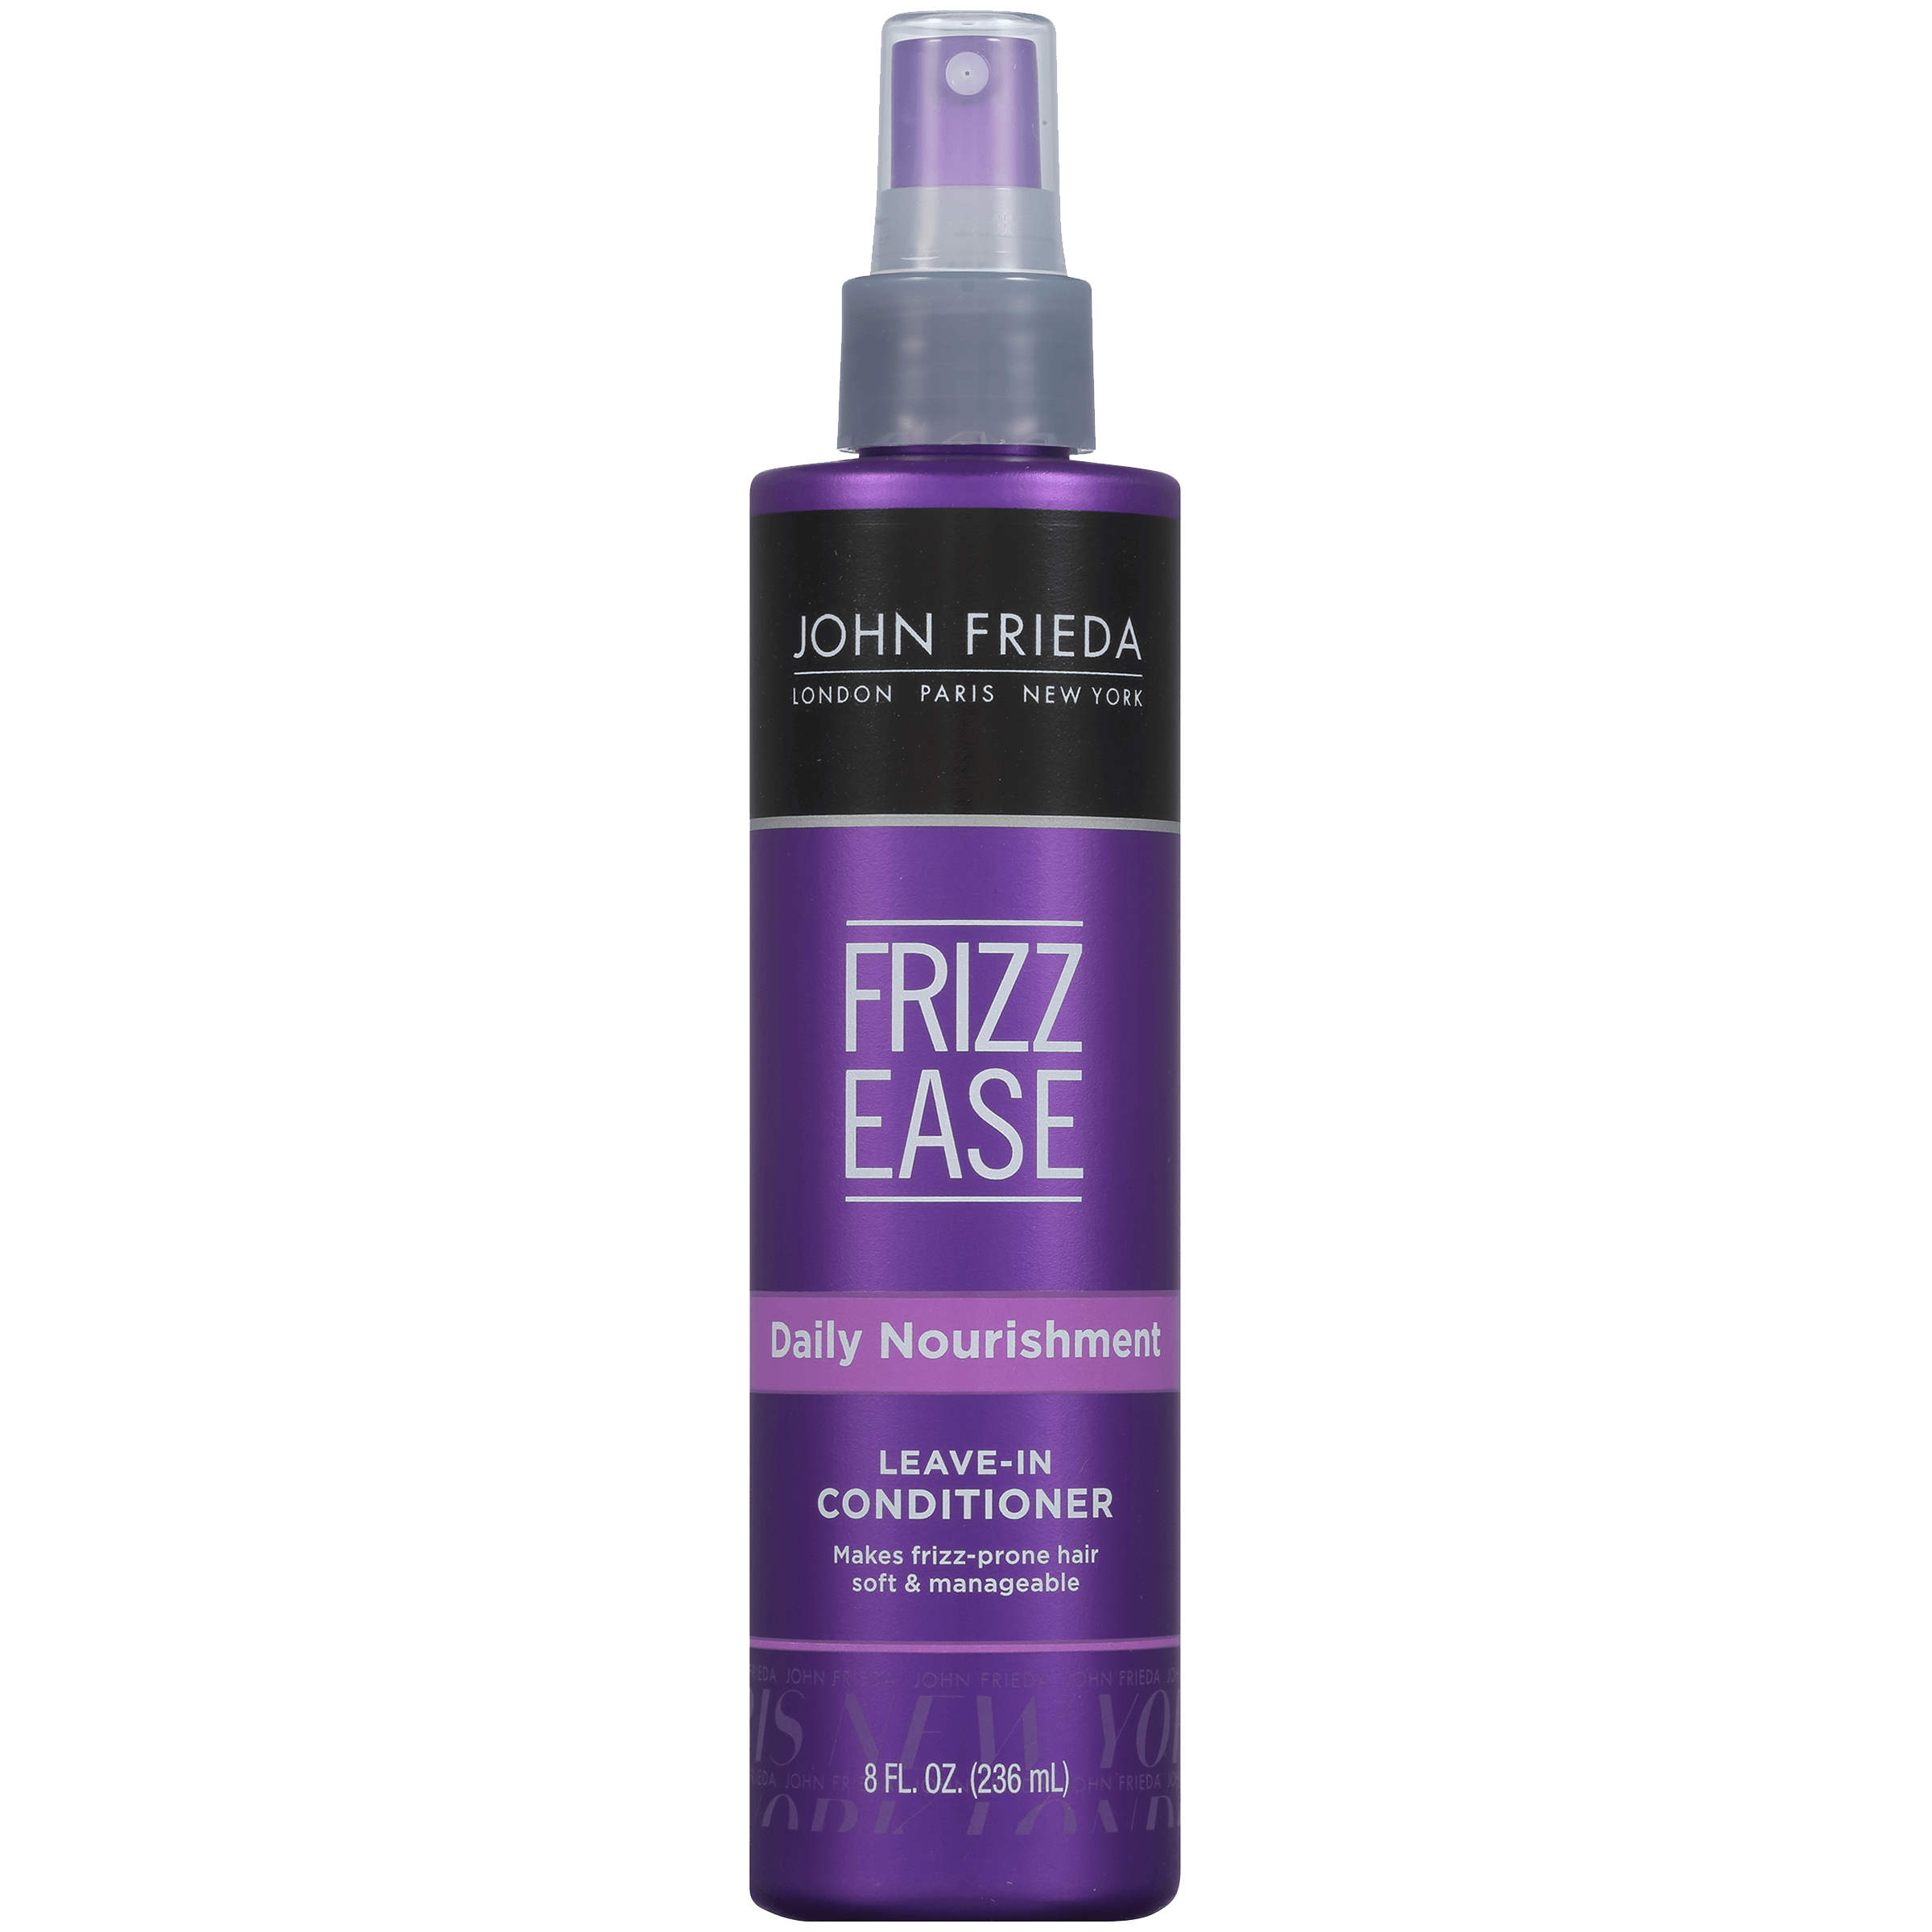 Frizz Ease Daily Nourishment